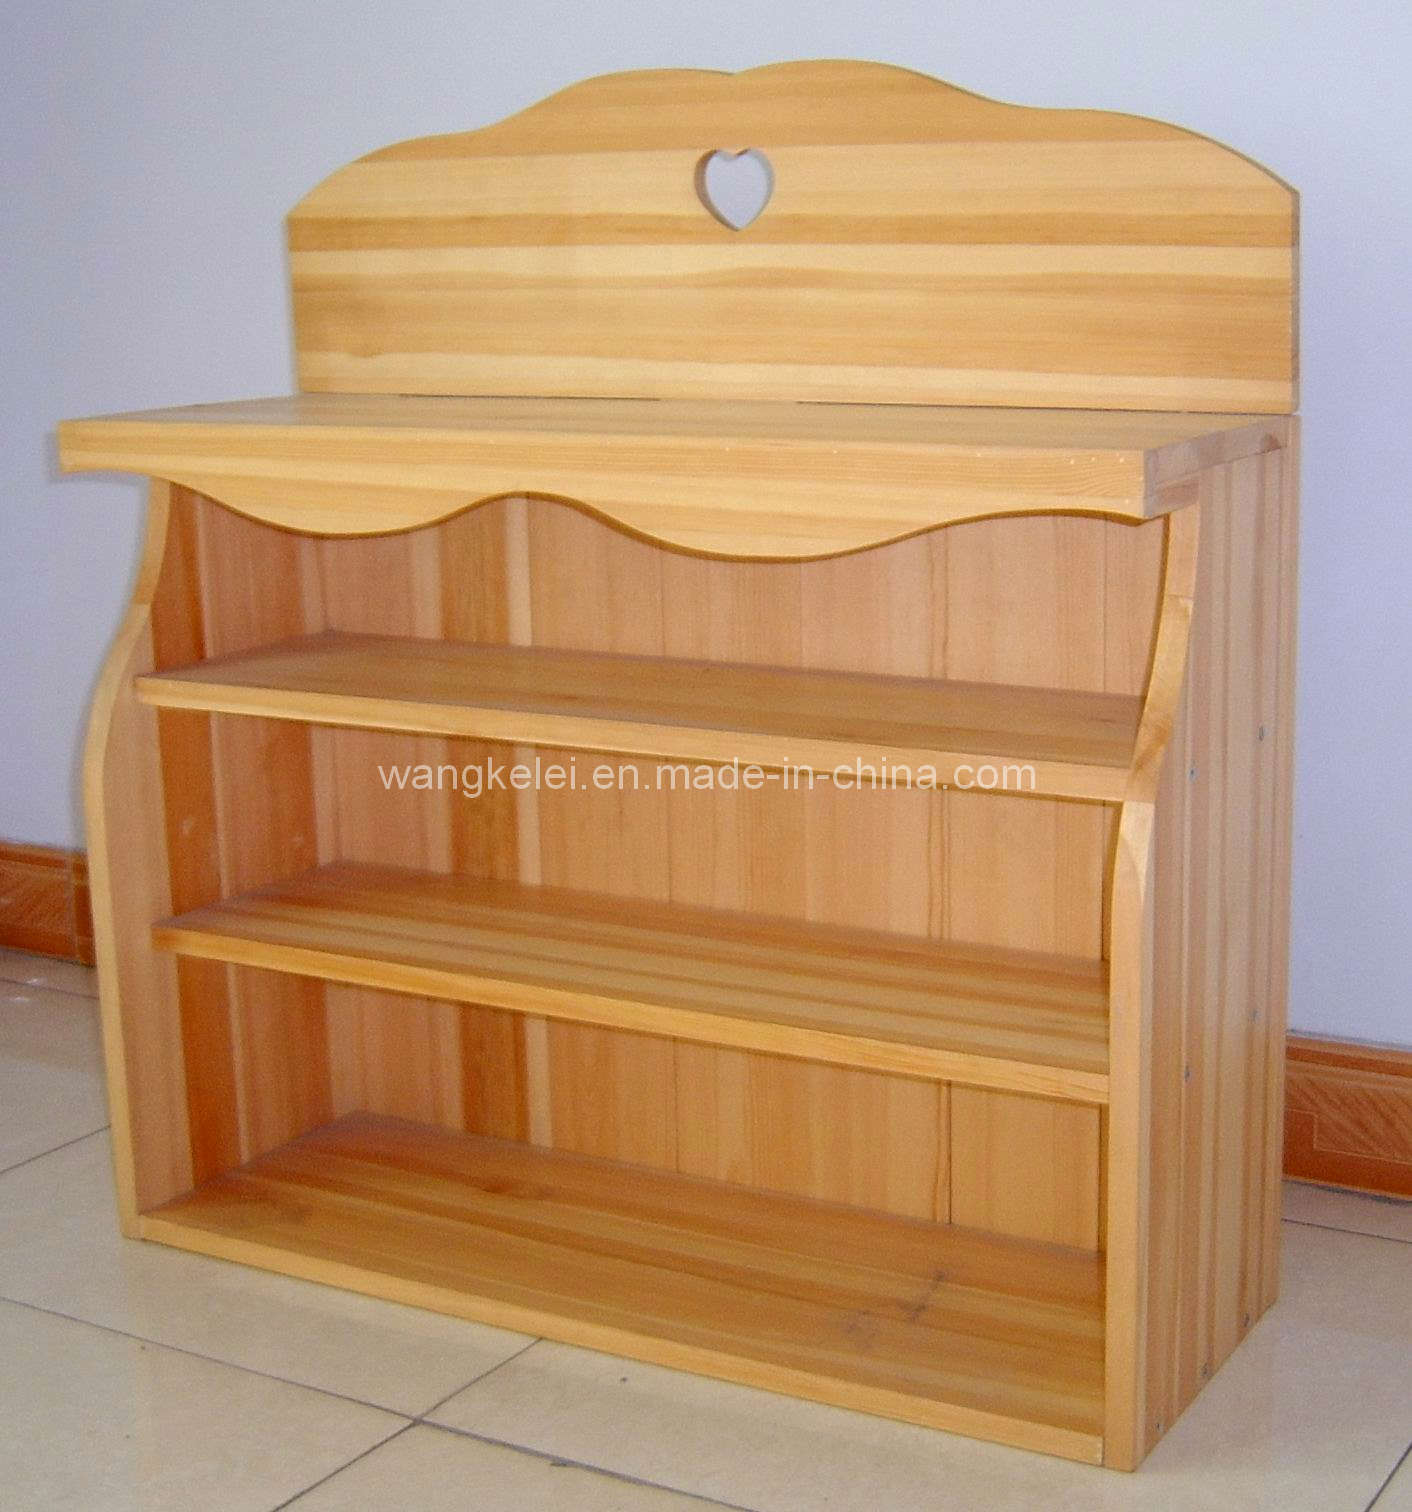 China wooden furniture cj 0225 china wooden furniture for Wooden furniture